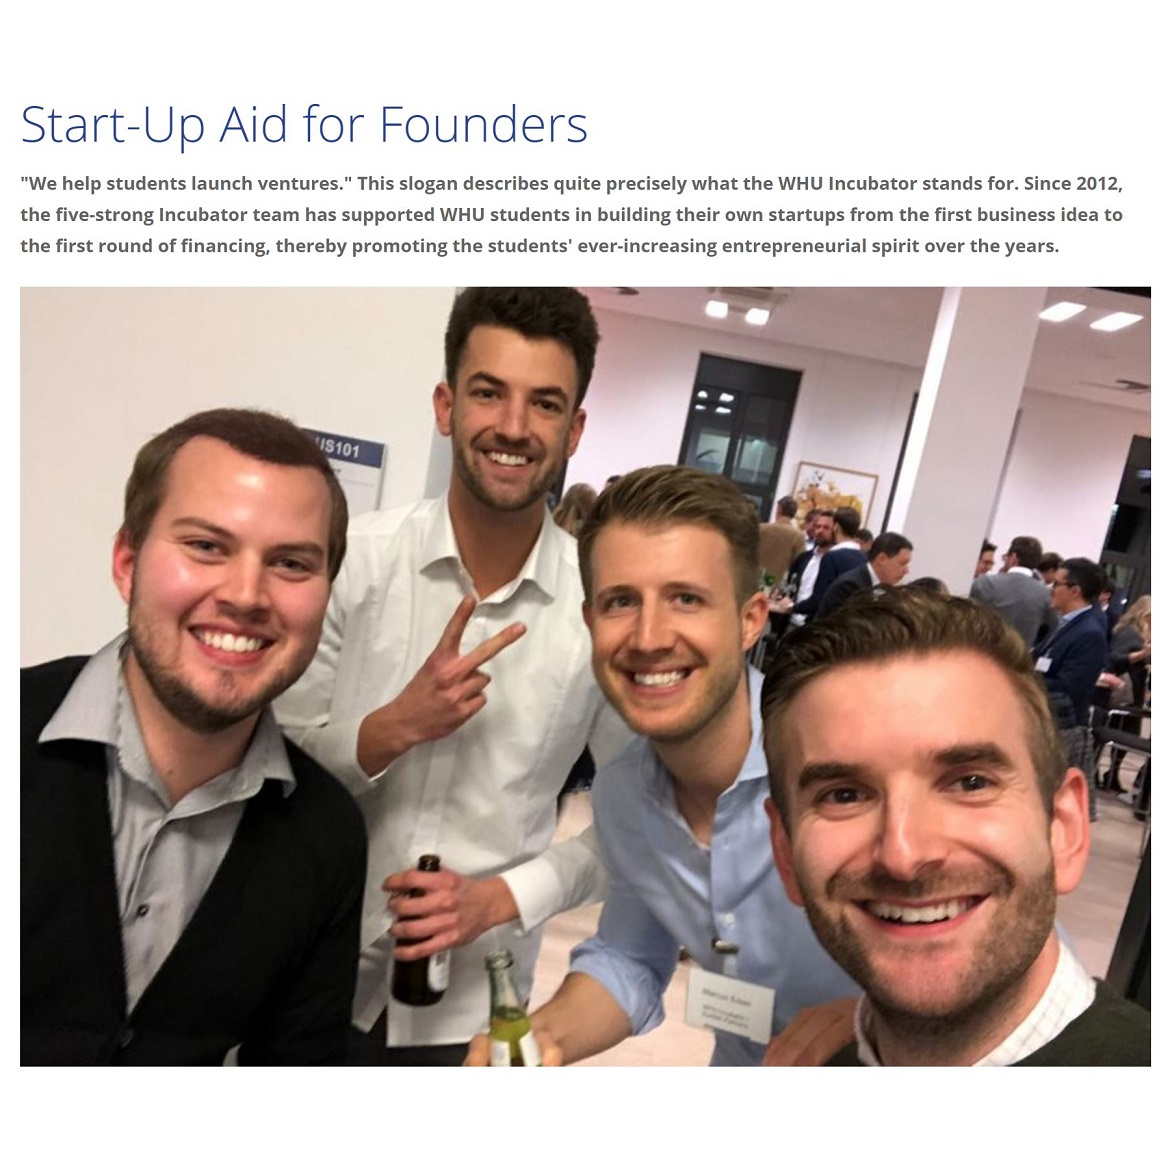 Start-Up Aid for Founders